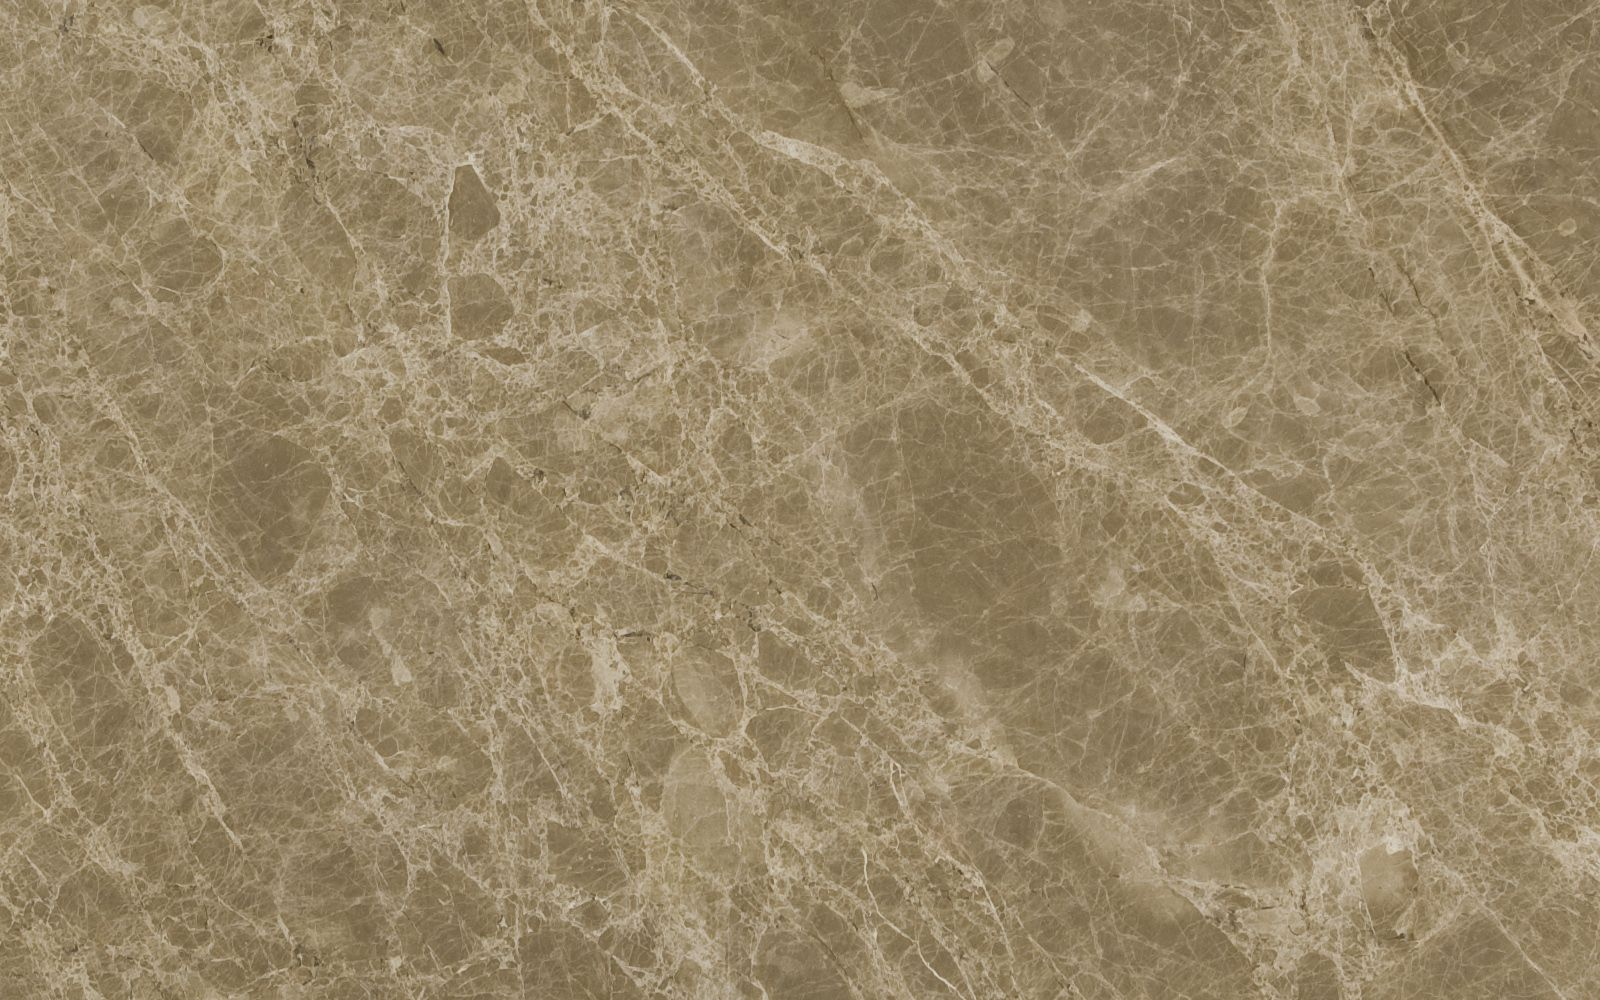 Emperador Light Marble Pattern